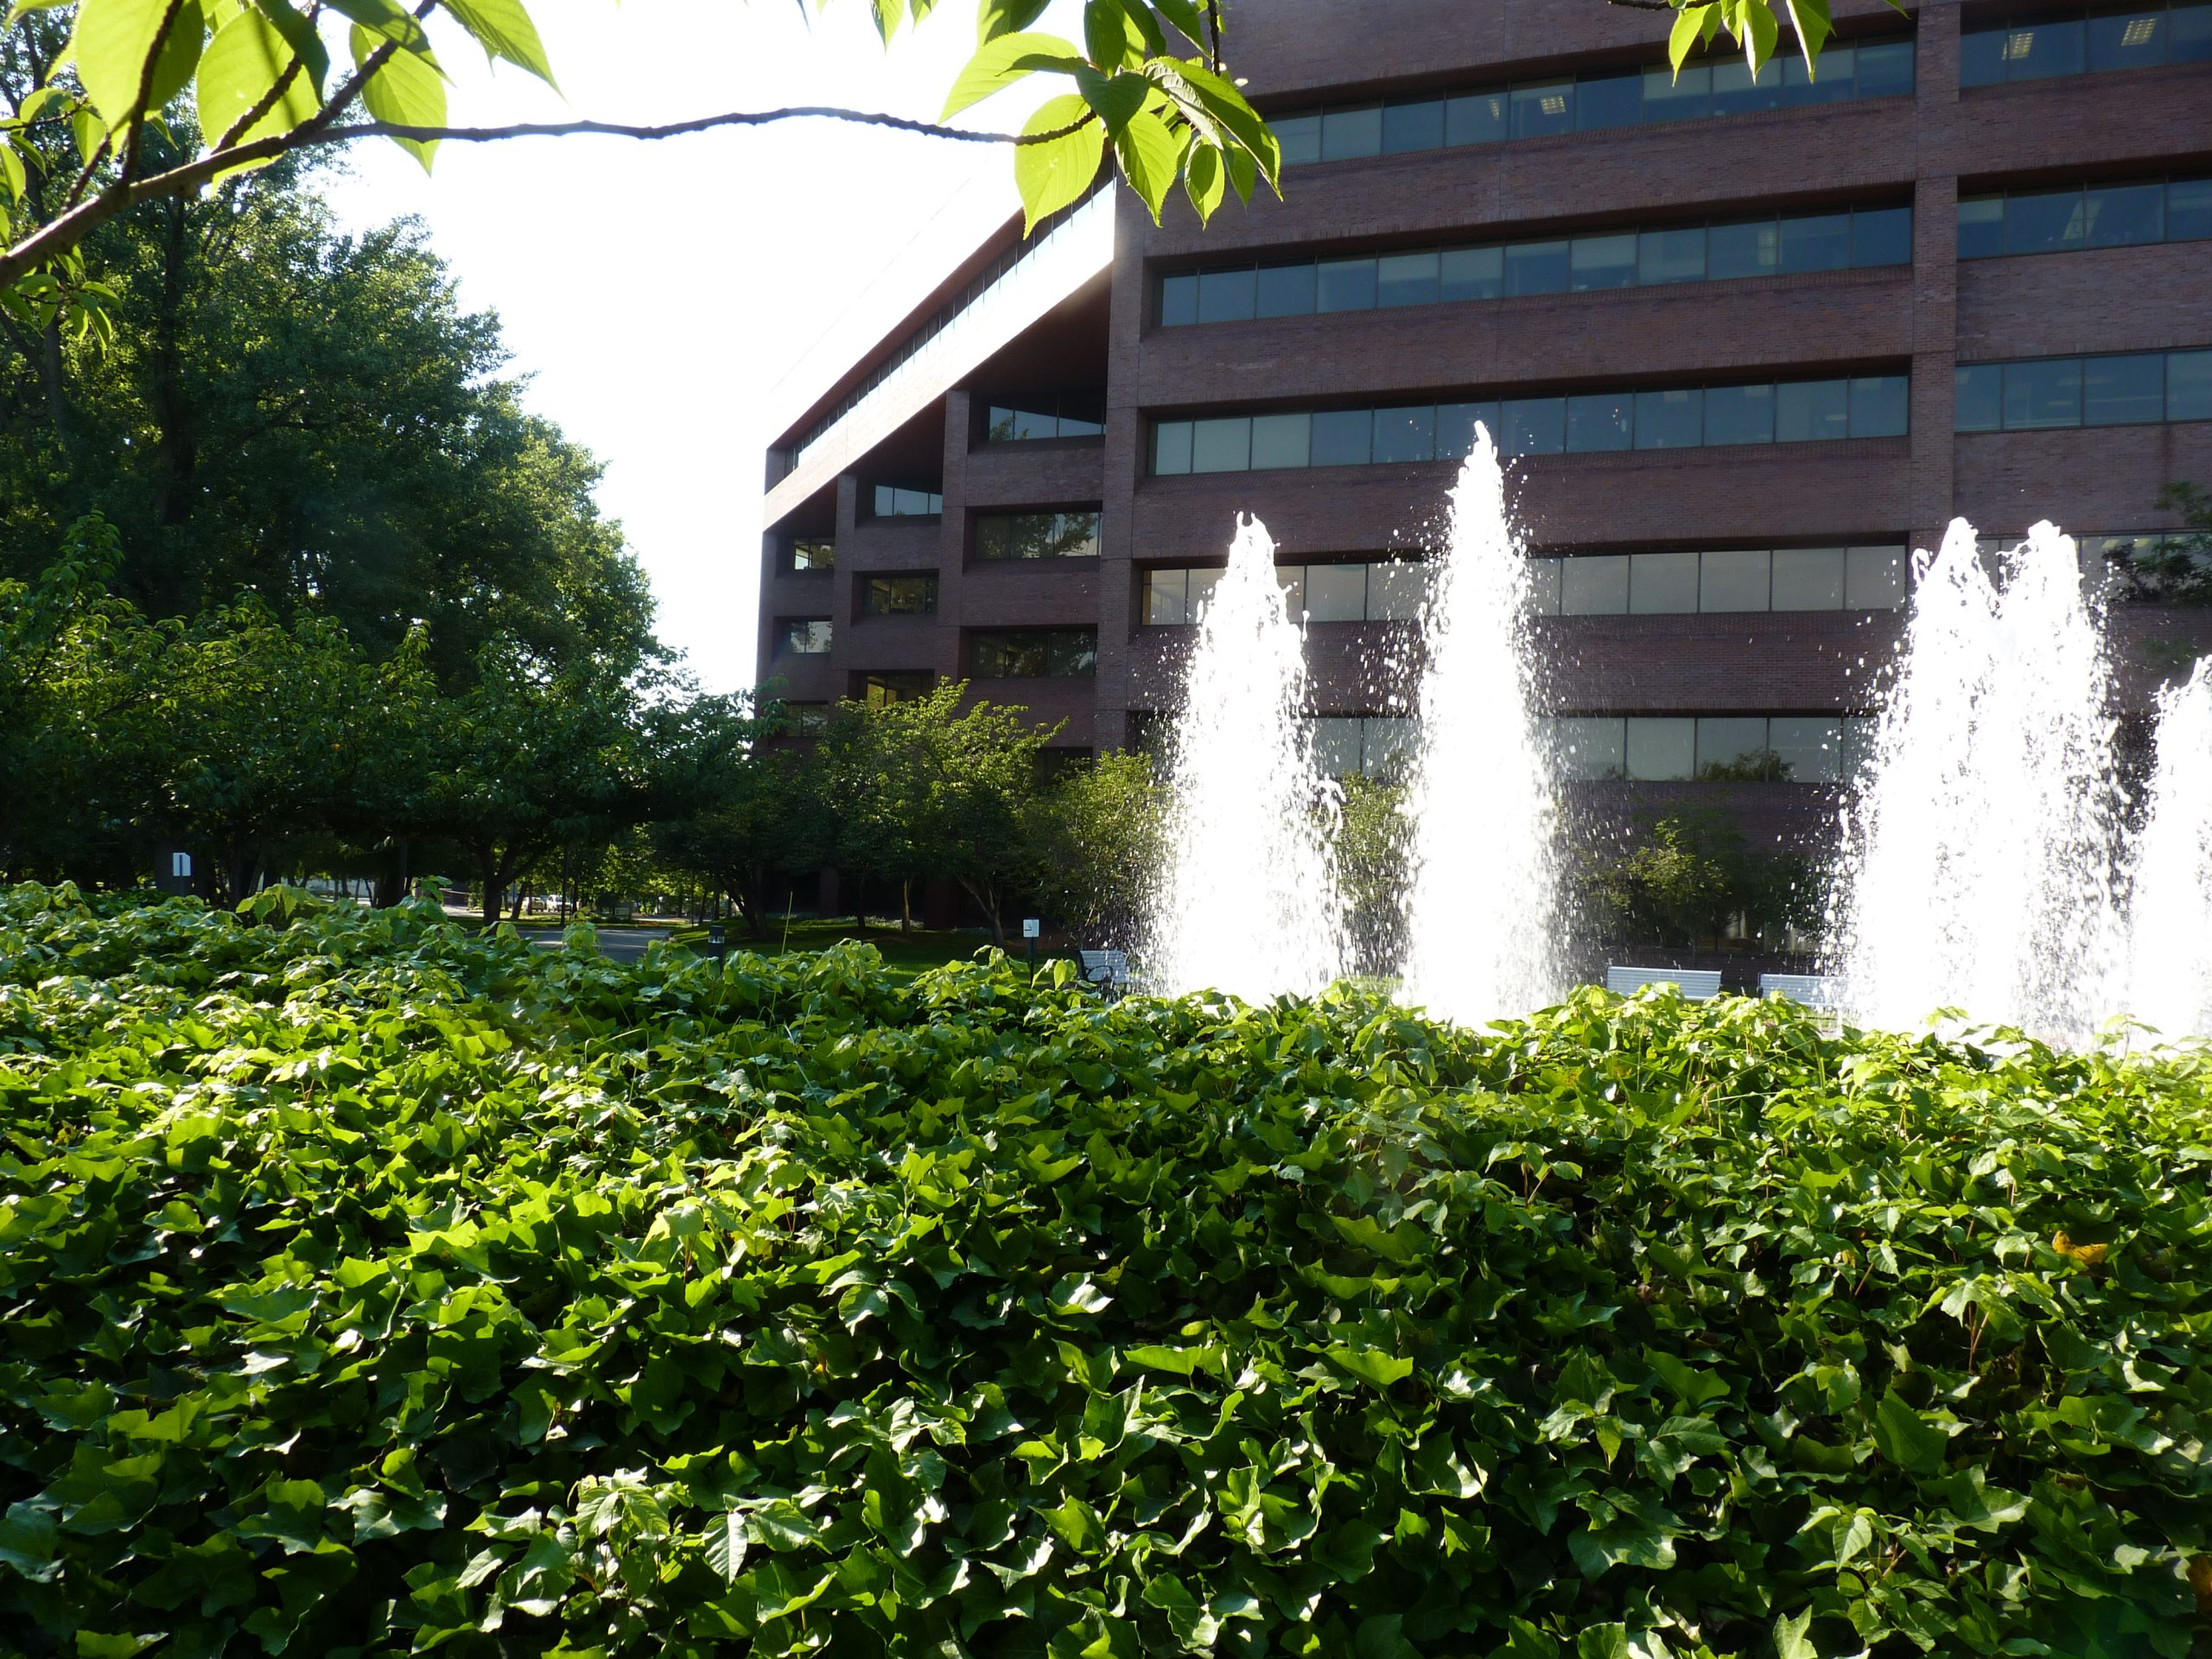 picture of a brick red office building with many windows with fountains and bushes outside of the building